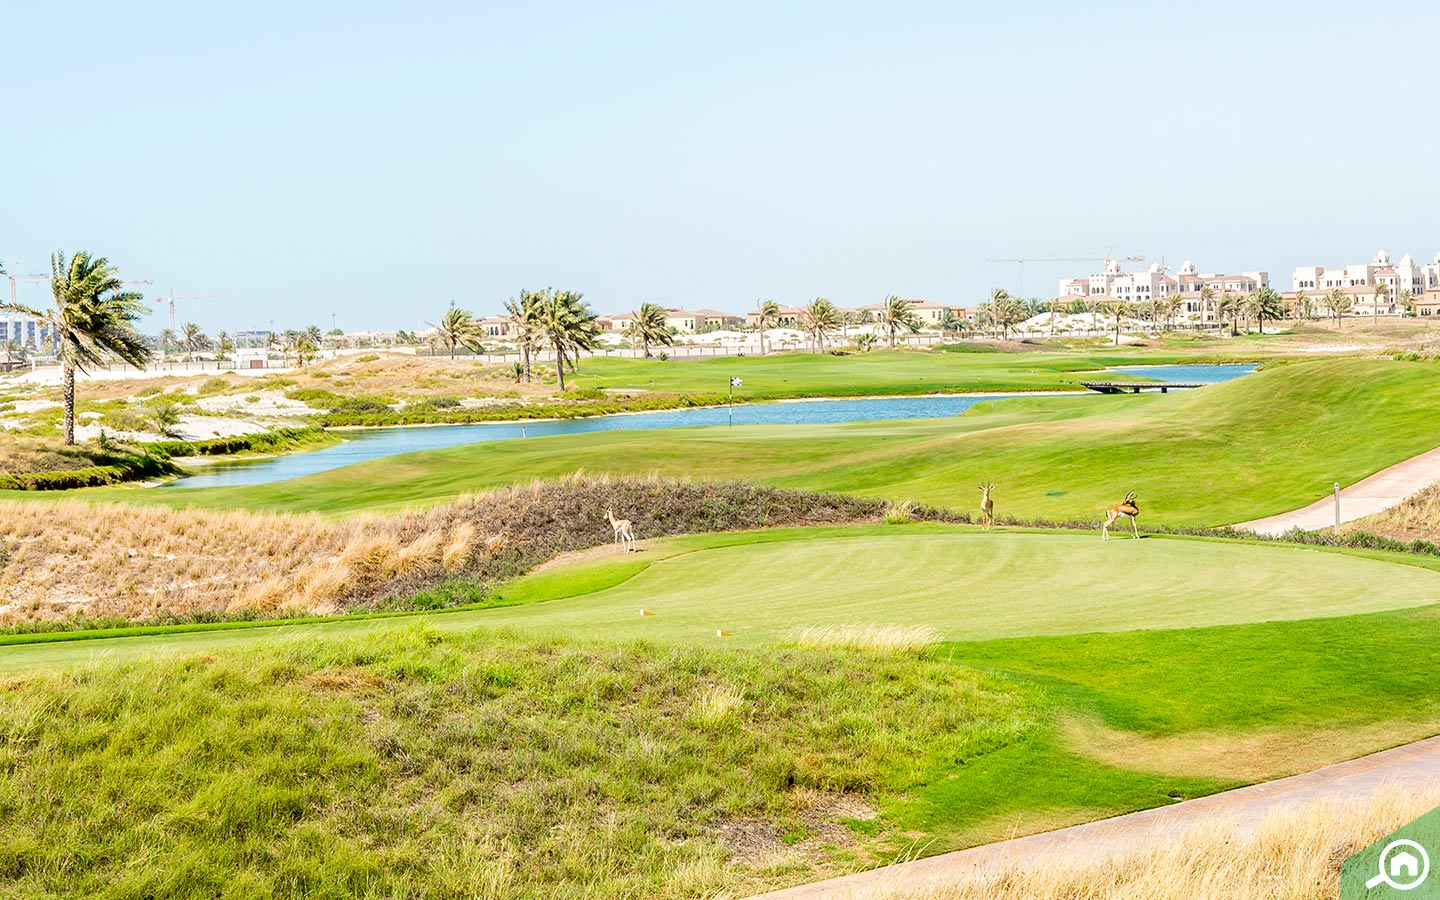 living on saadiyat island gives you easy access to the golf club